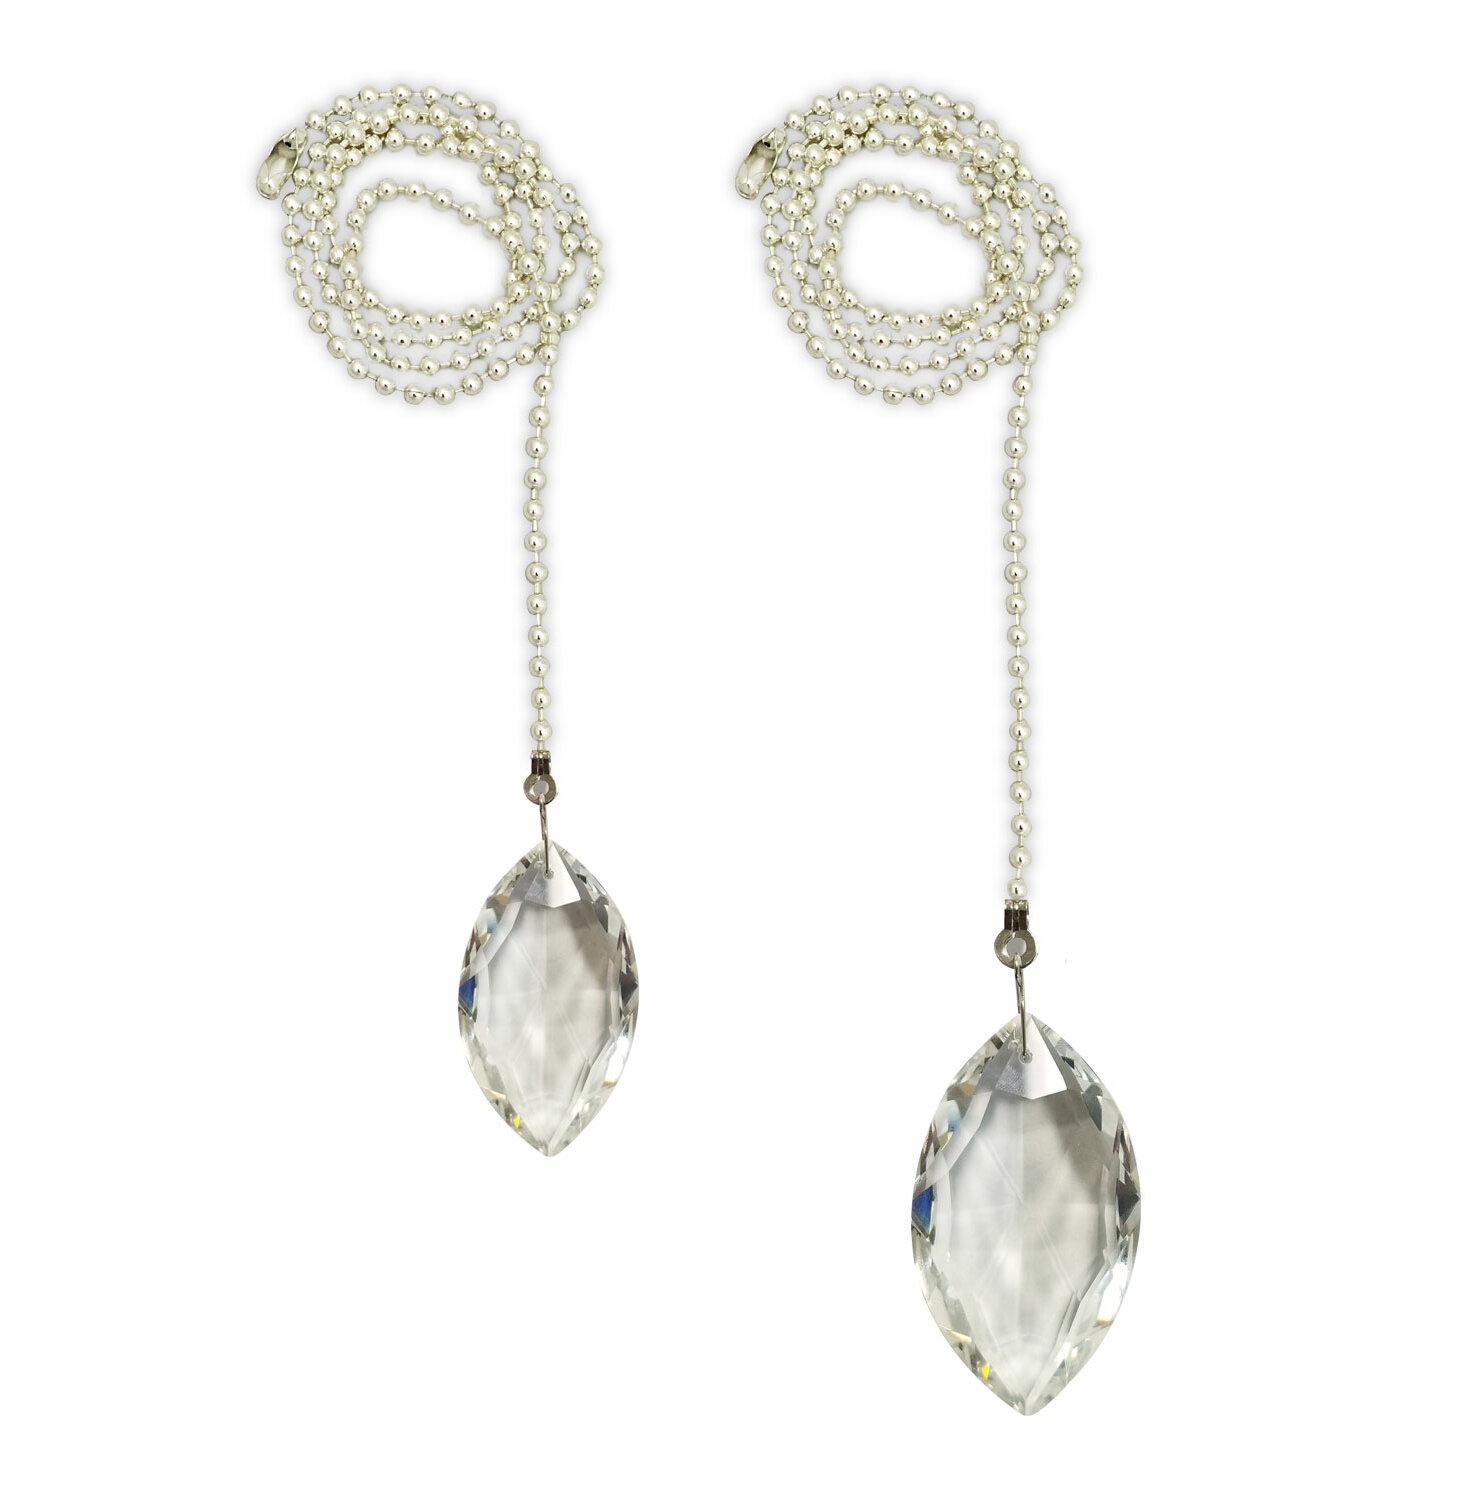 Fan Pull Chain with Balloon Shaped Crystal Faceted Pendant